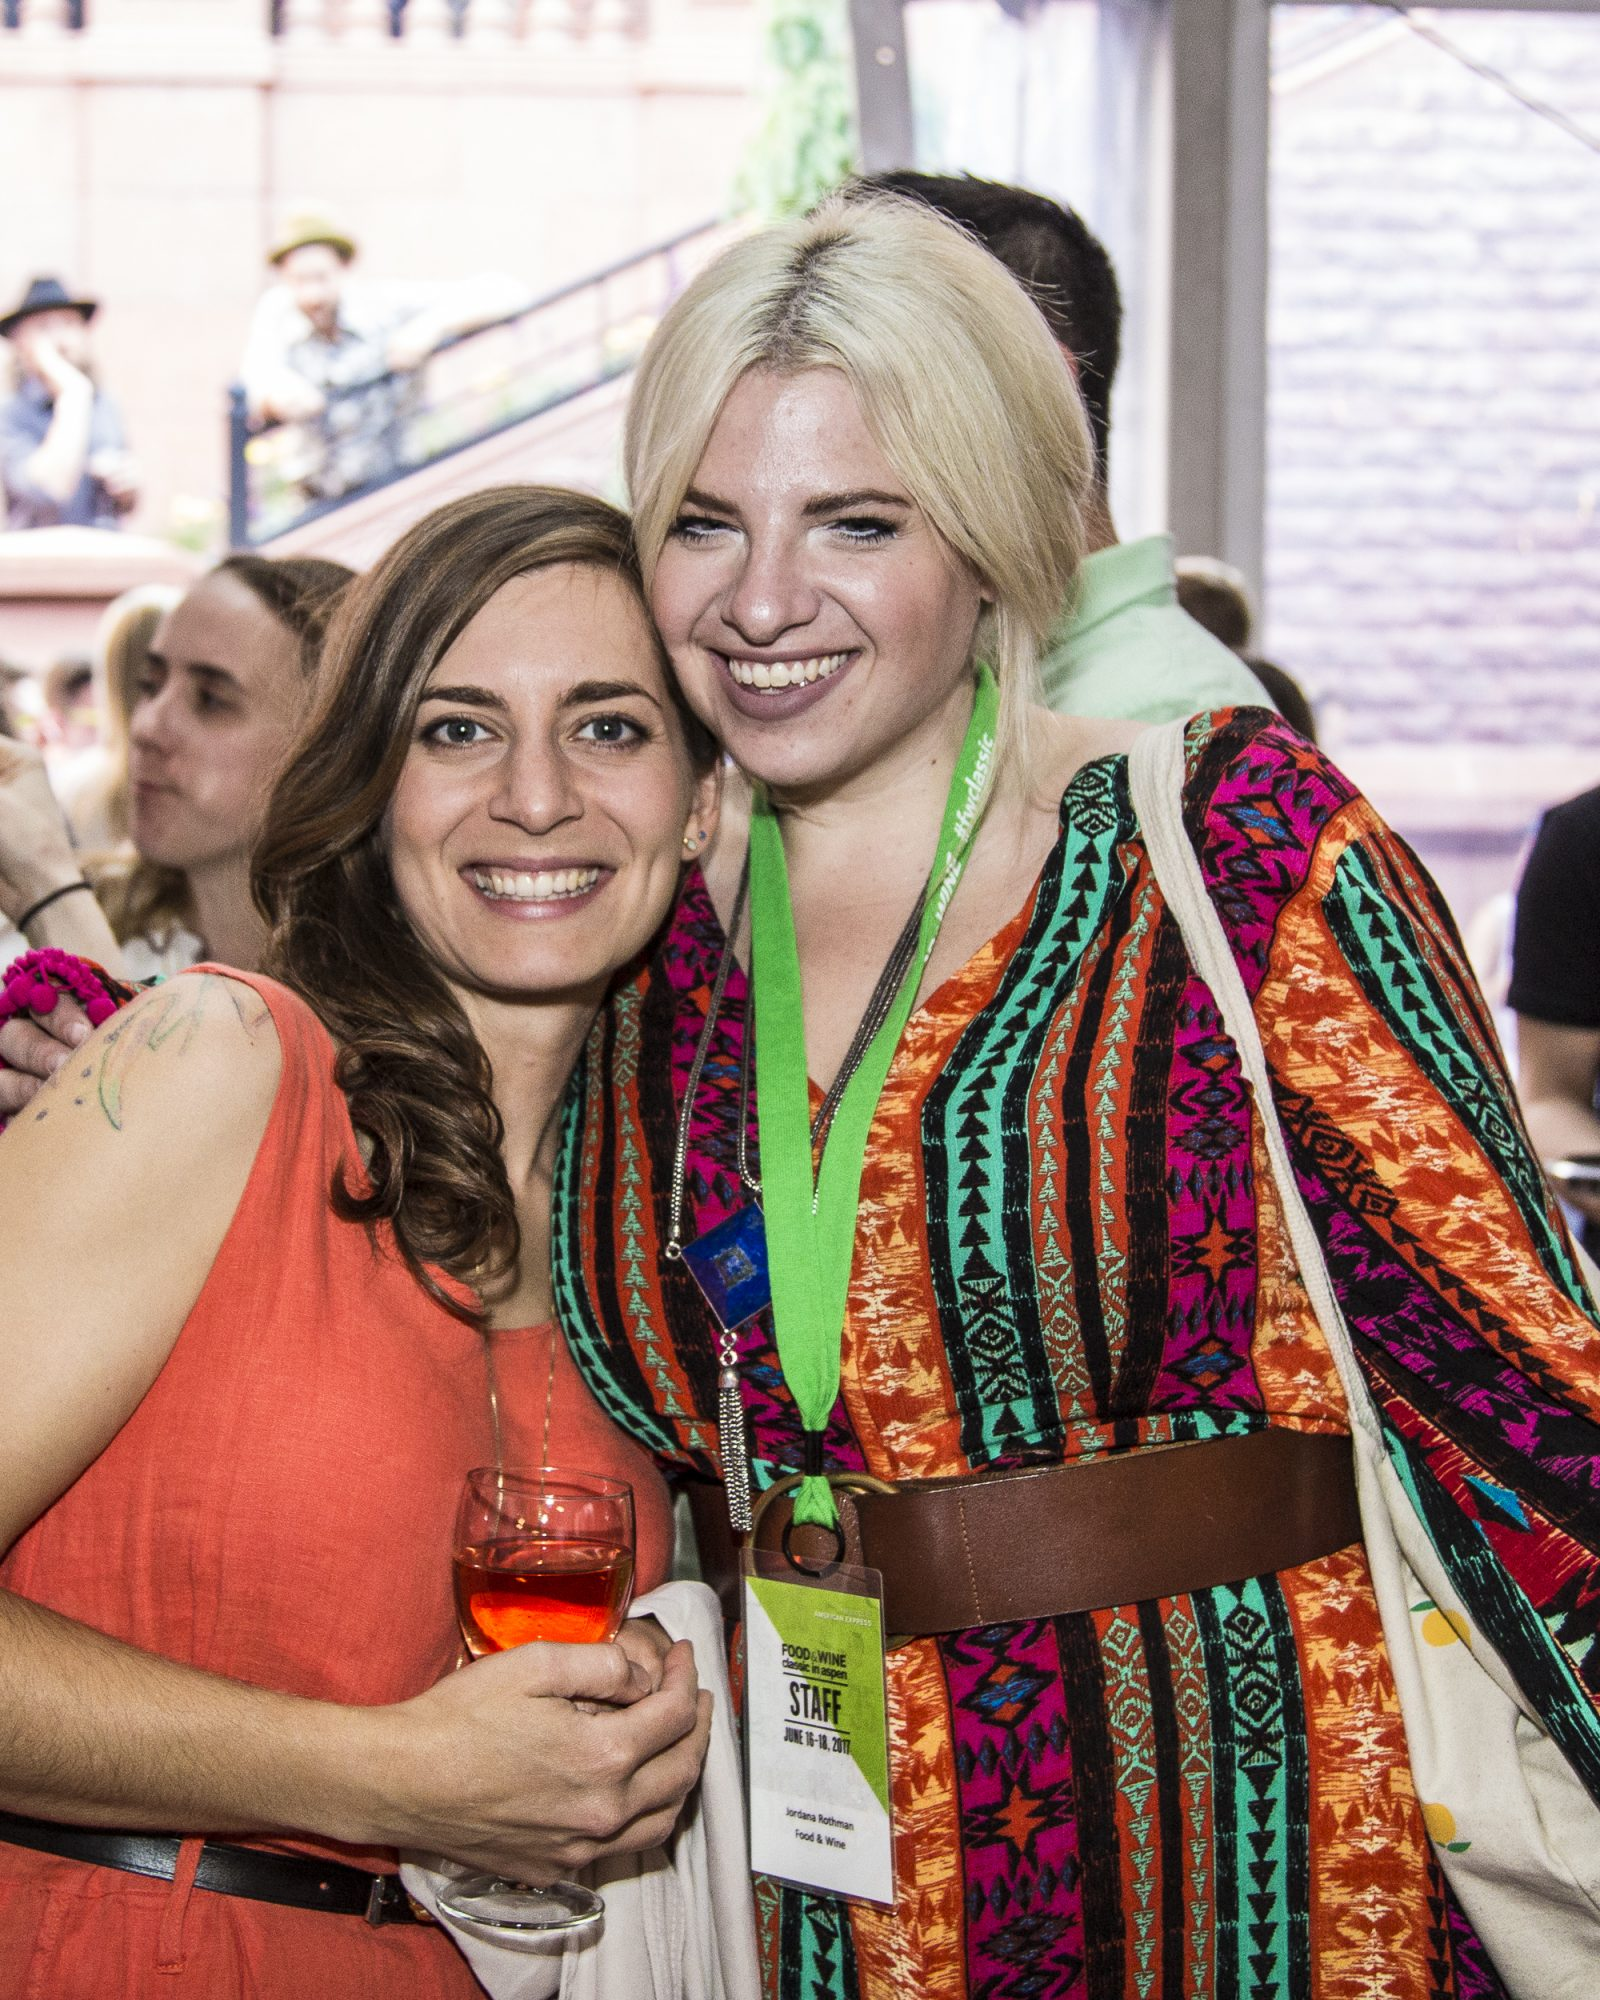 Best New Chef 2017 Sara Kramer of Kismet and Restaurant Editor Jordana Rothman at the Food & Wine Classic in Aspen welcome reception